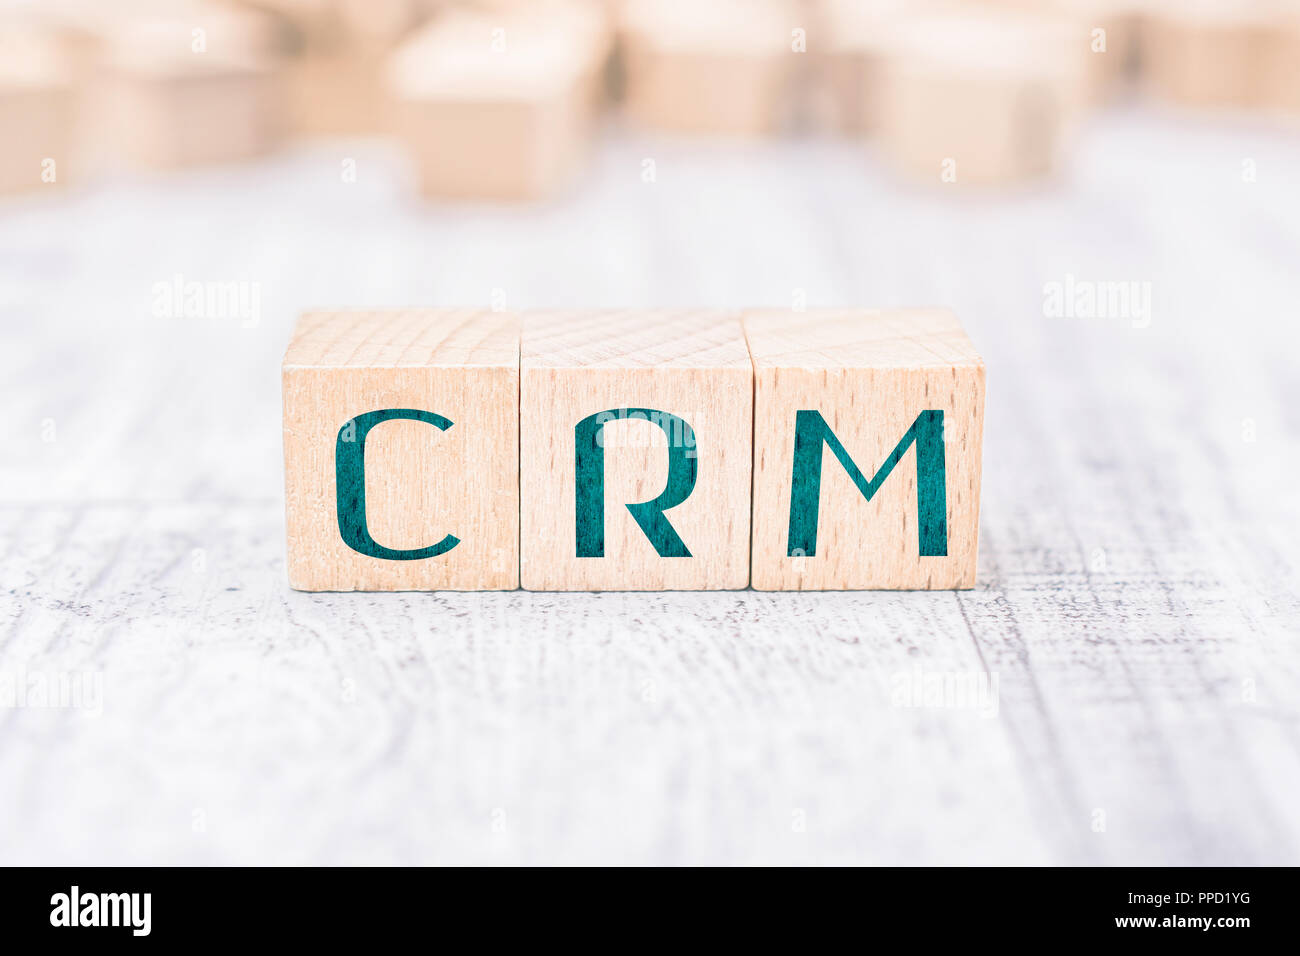 The Abbreviation CRM Formed By Wooden Blocks On A White Table - Stock Image